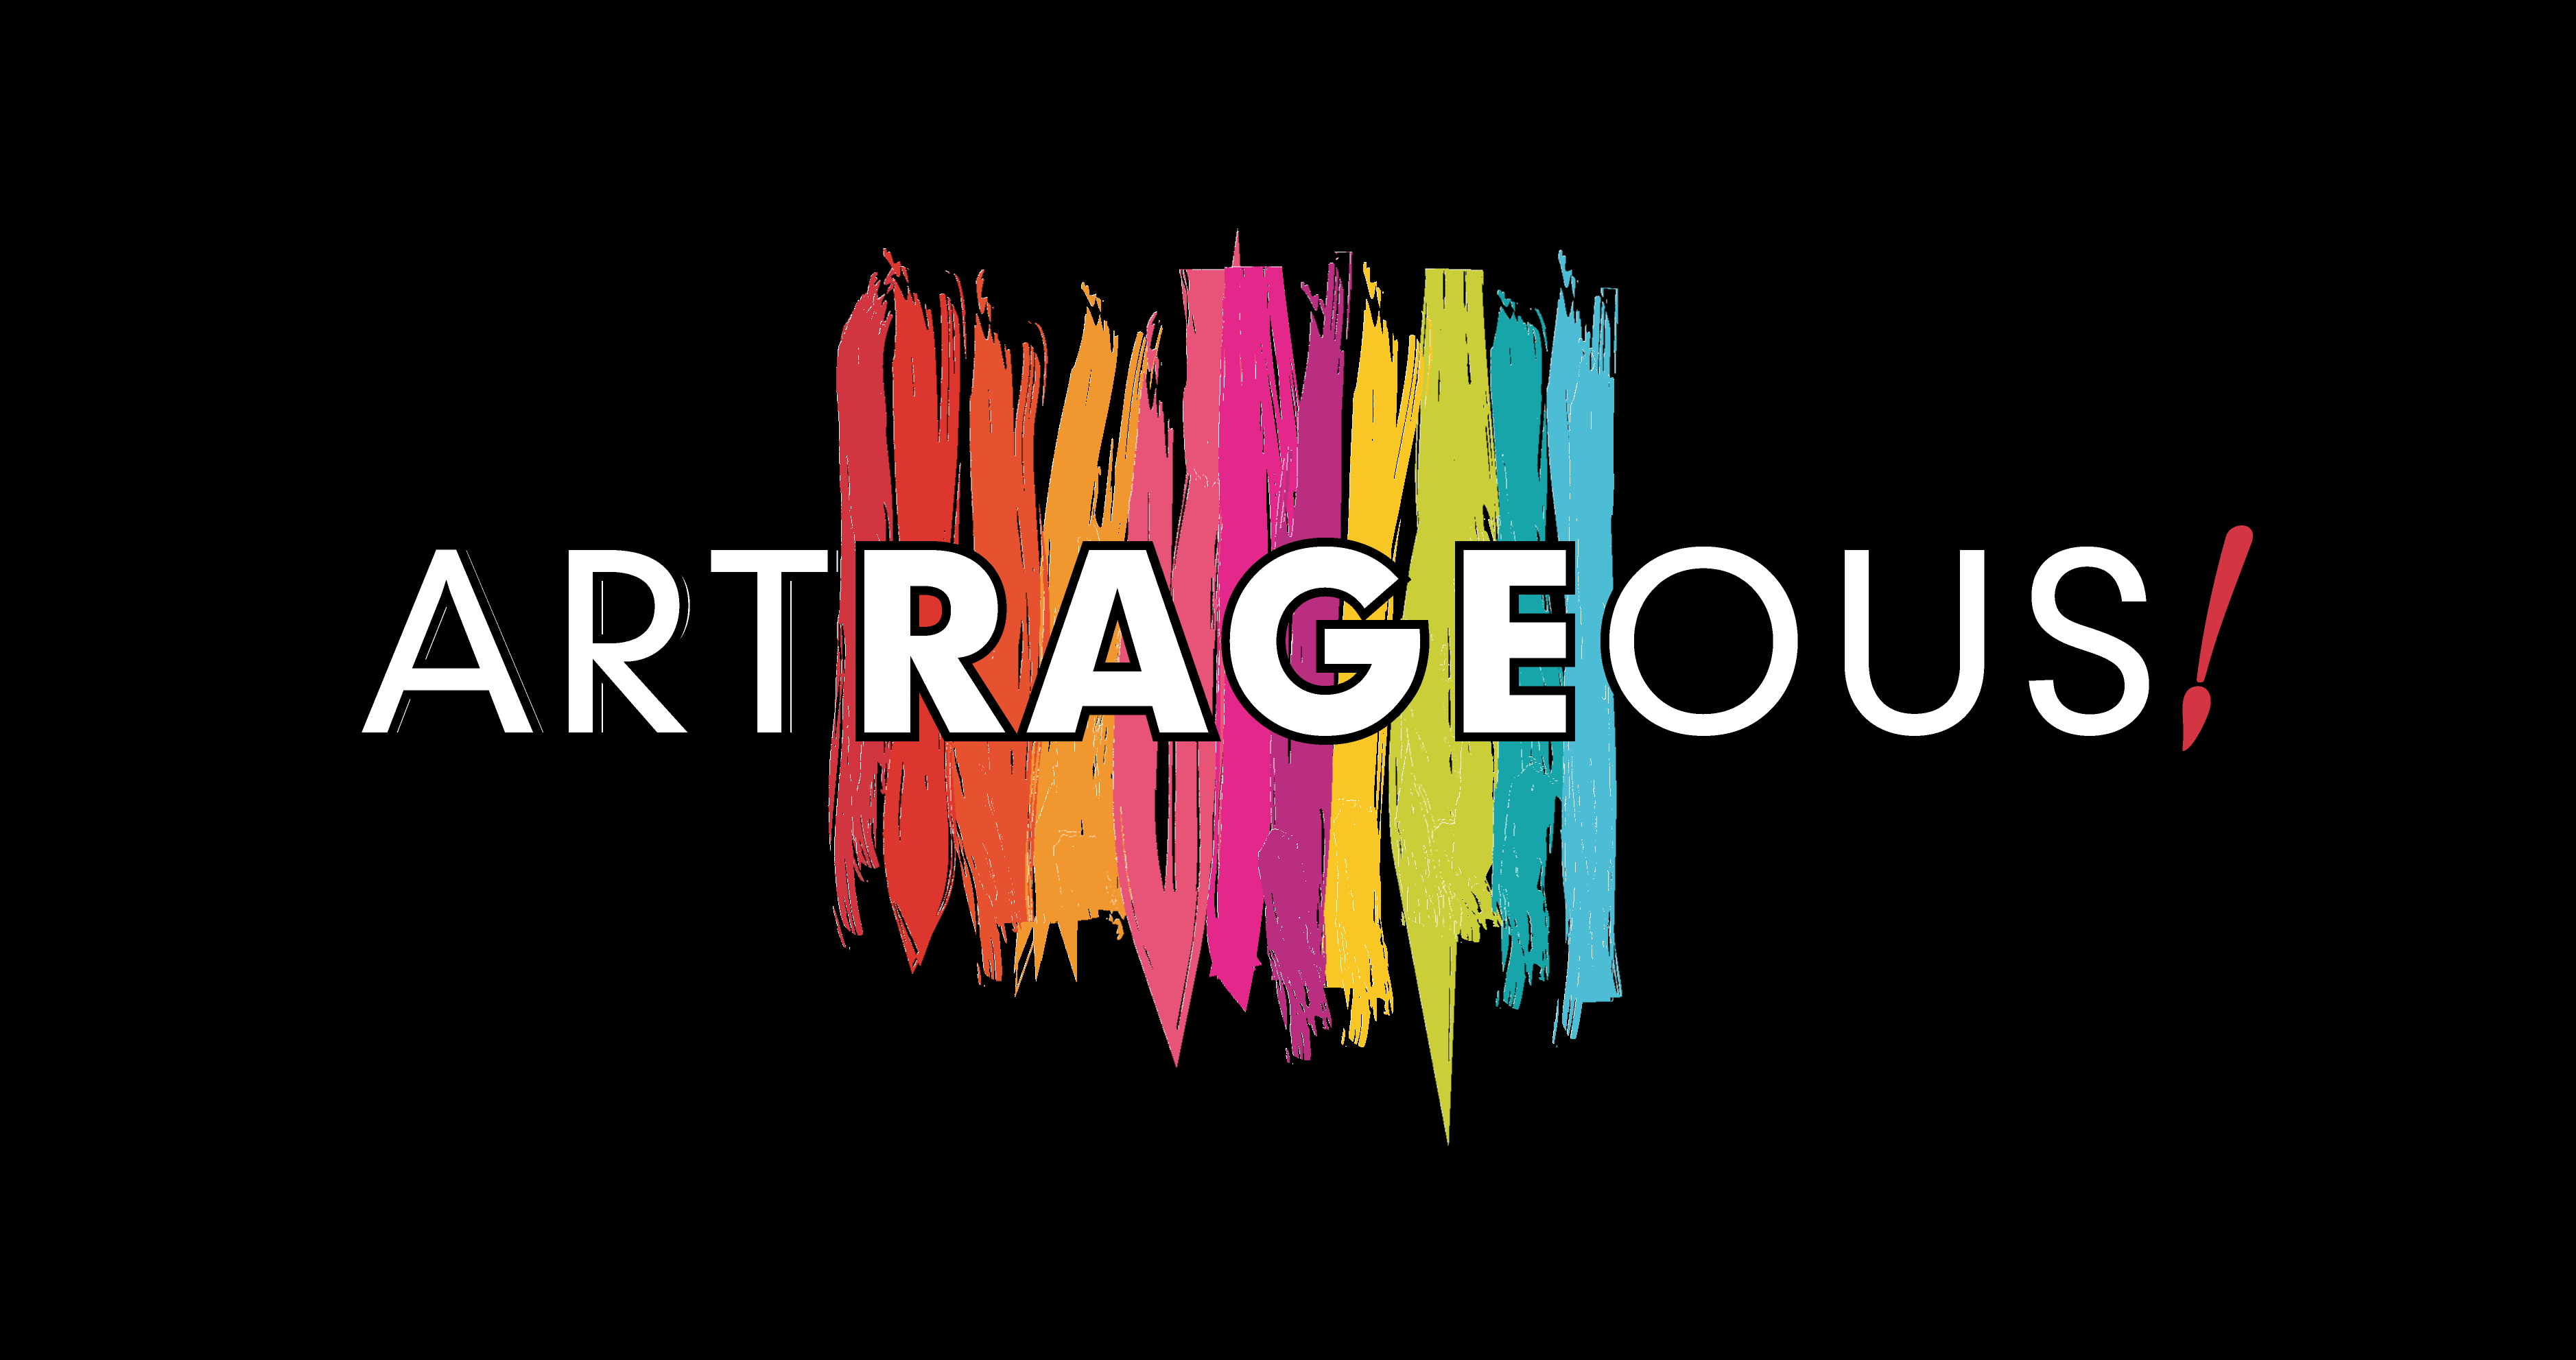 ARTrageous-LOGO-on-Black.png